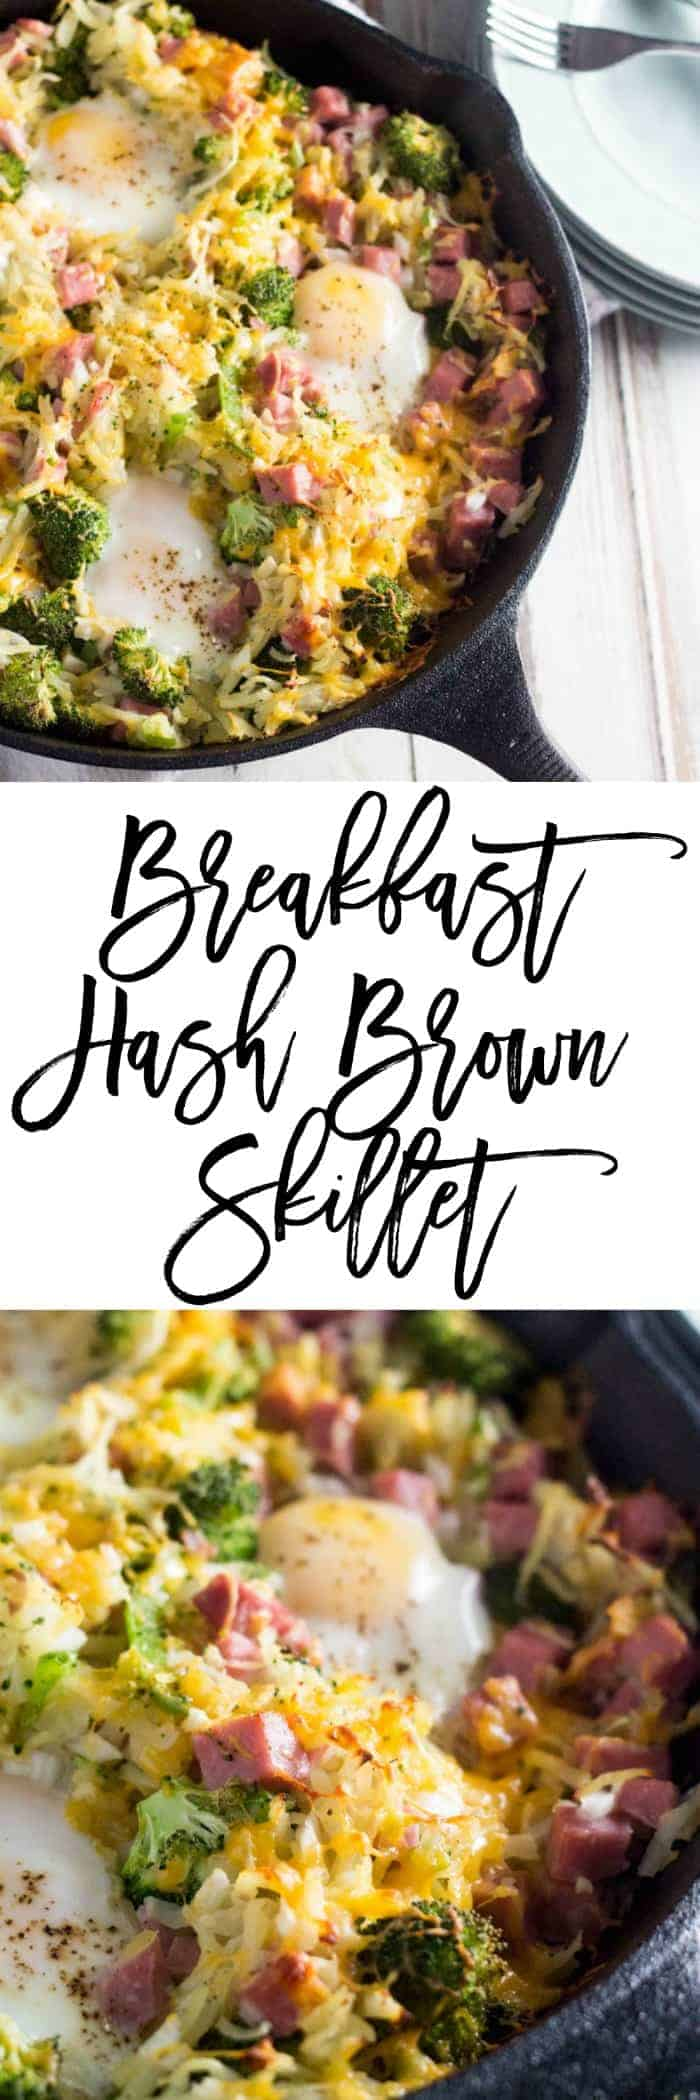 Breakfast Hash Brown Skillet